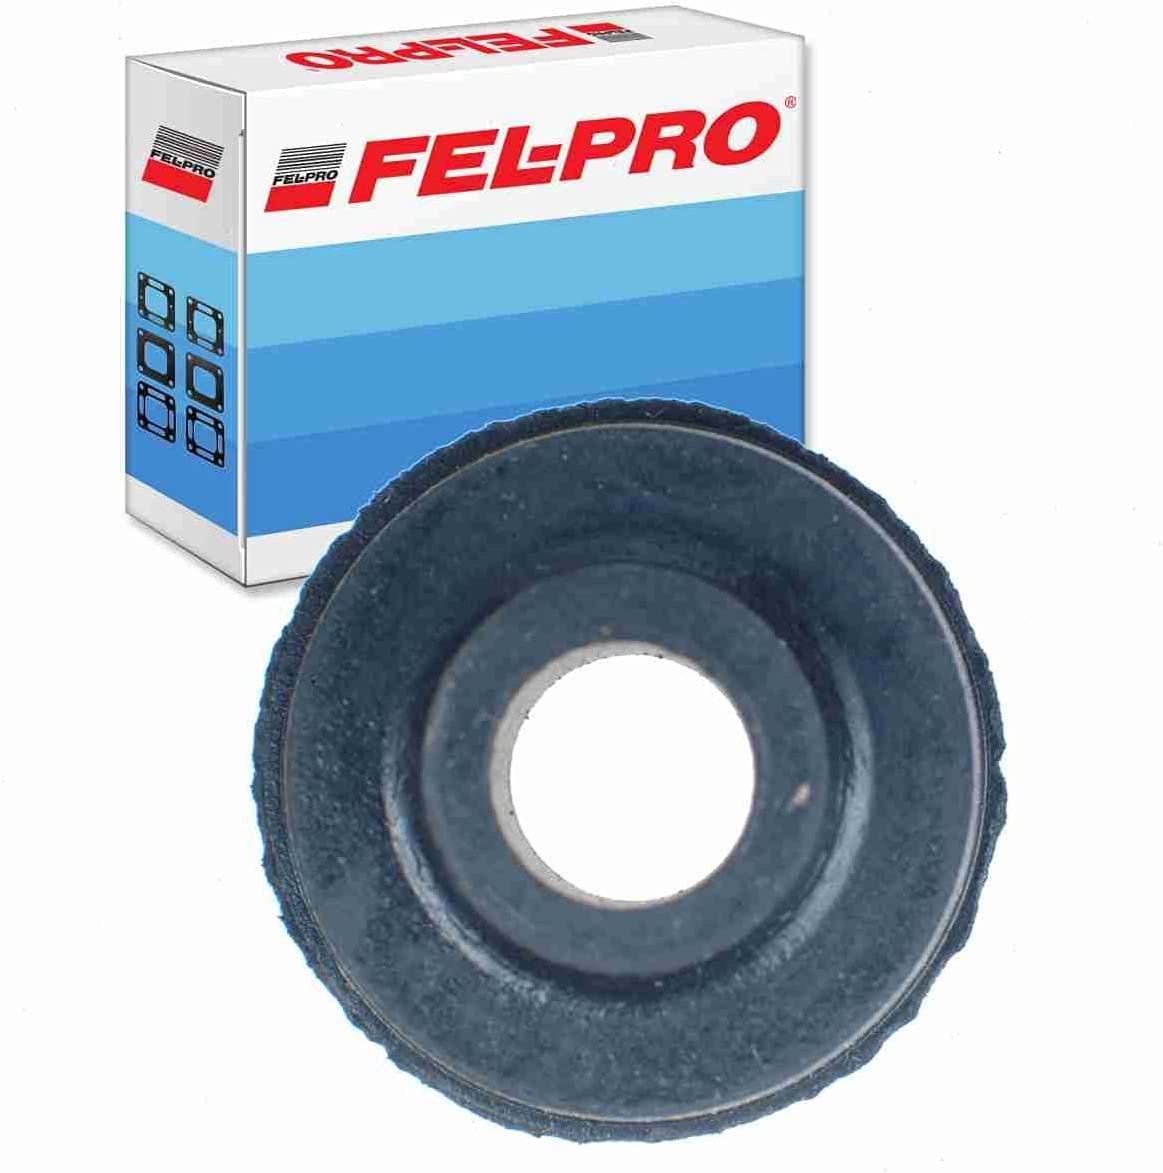 Fel-Pro Engine Valve Cover Grommet Ford Econ High order with compatible Set OFFer